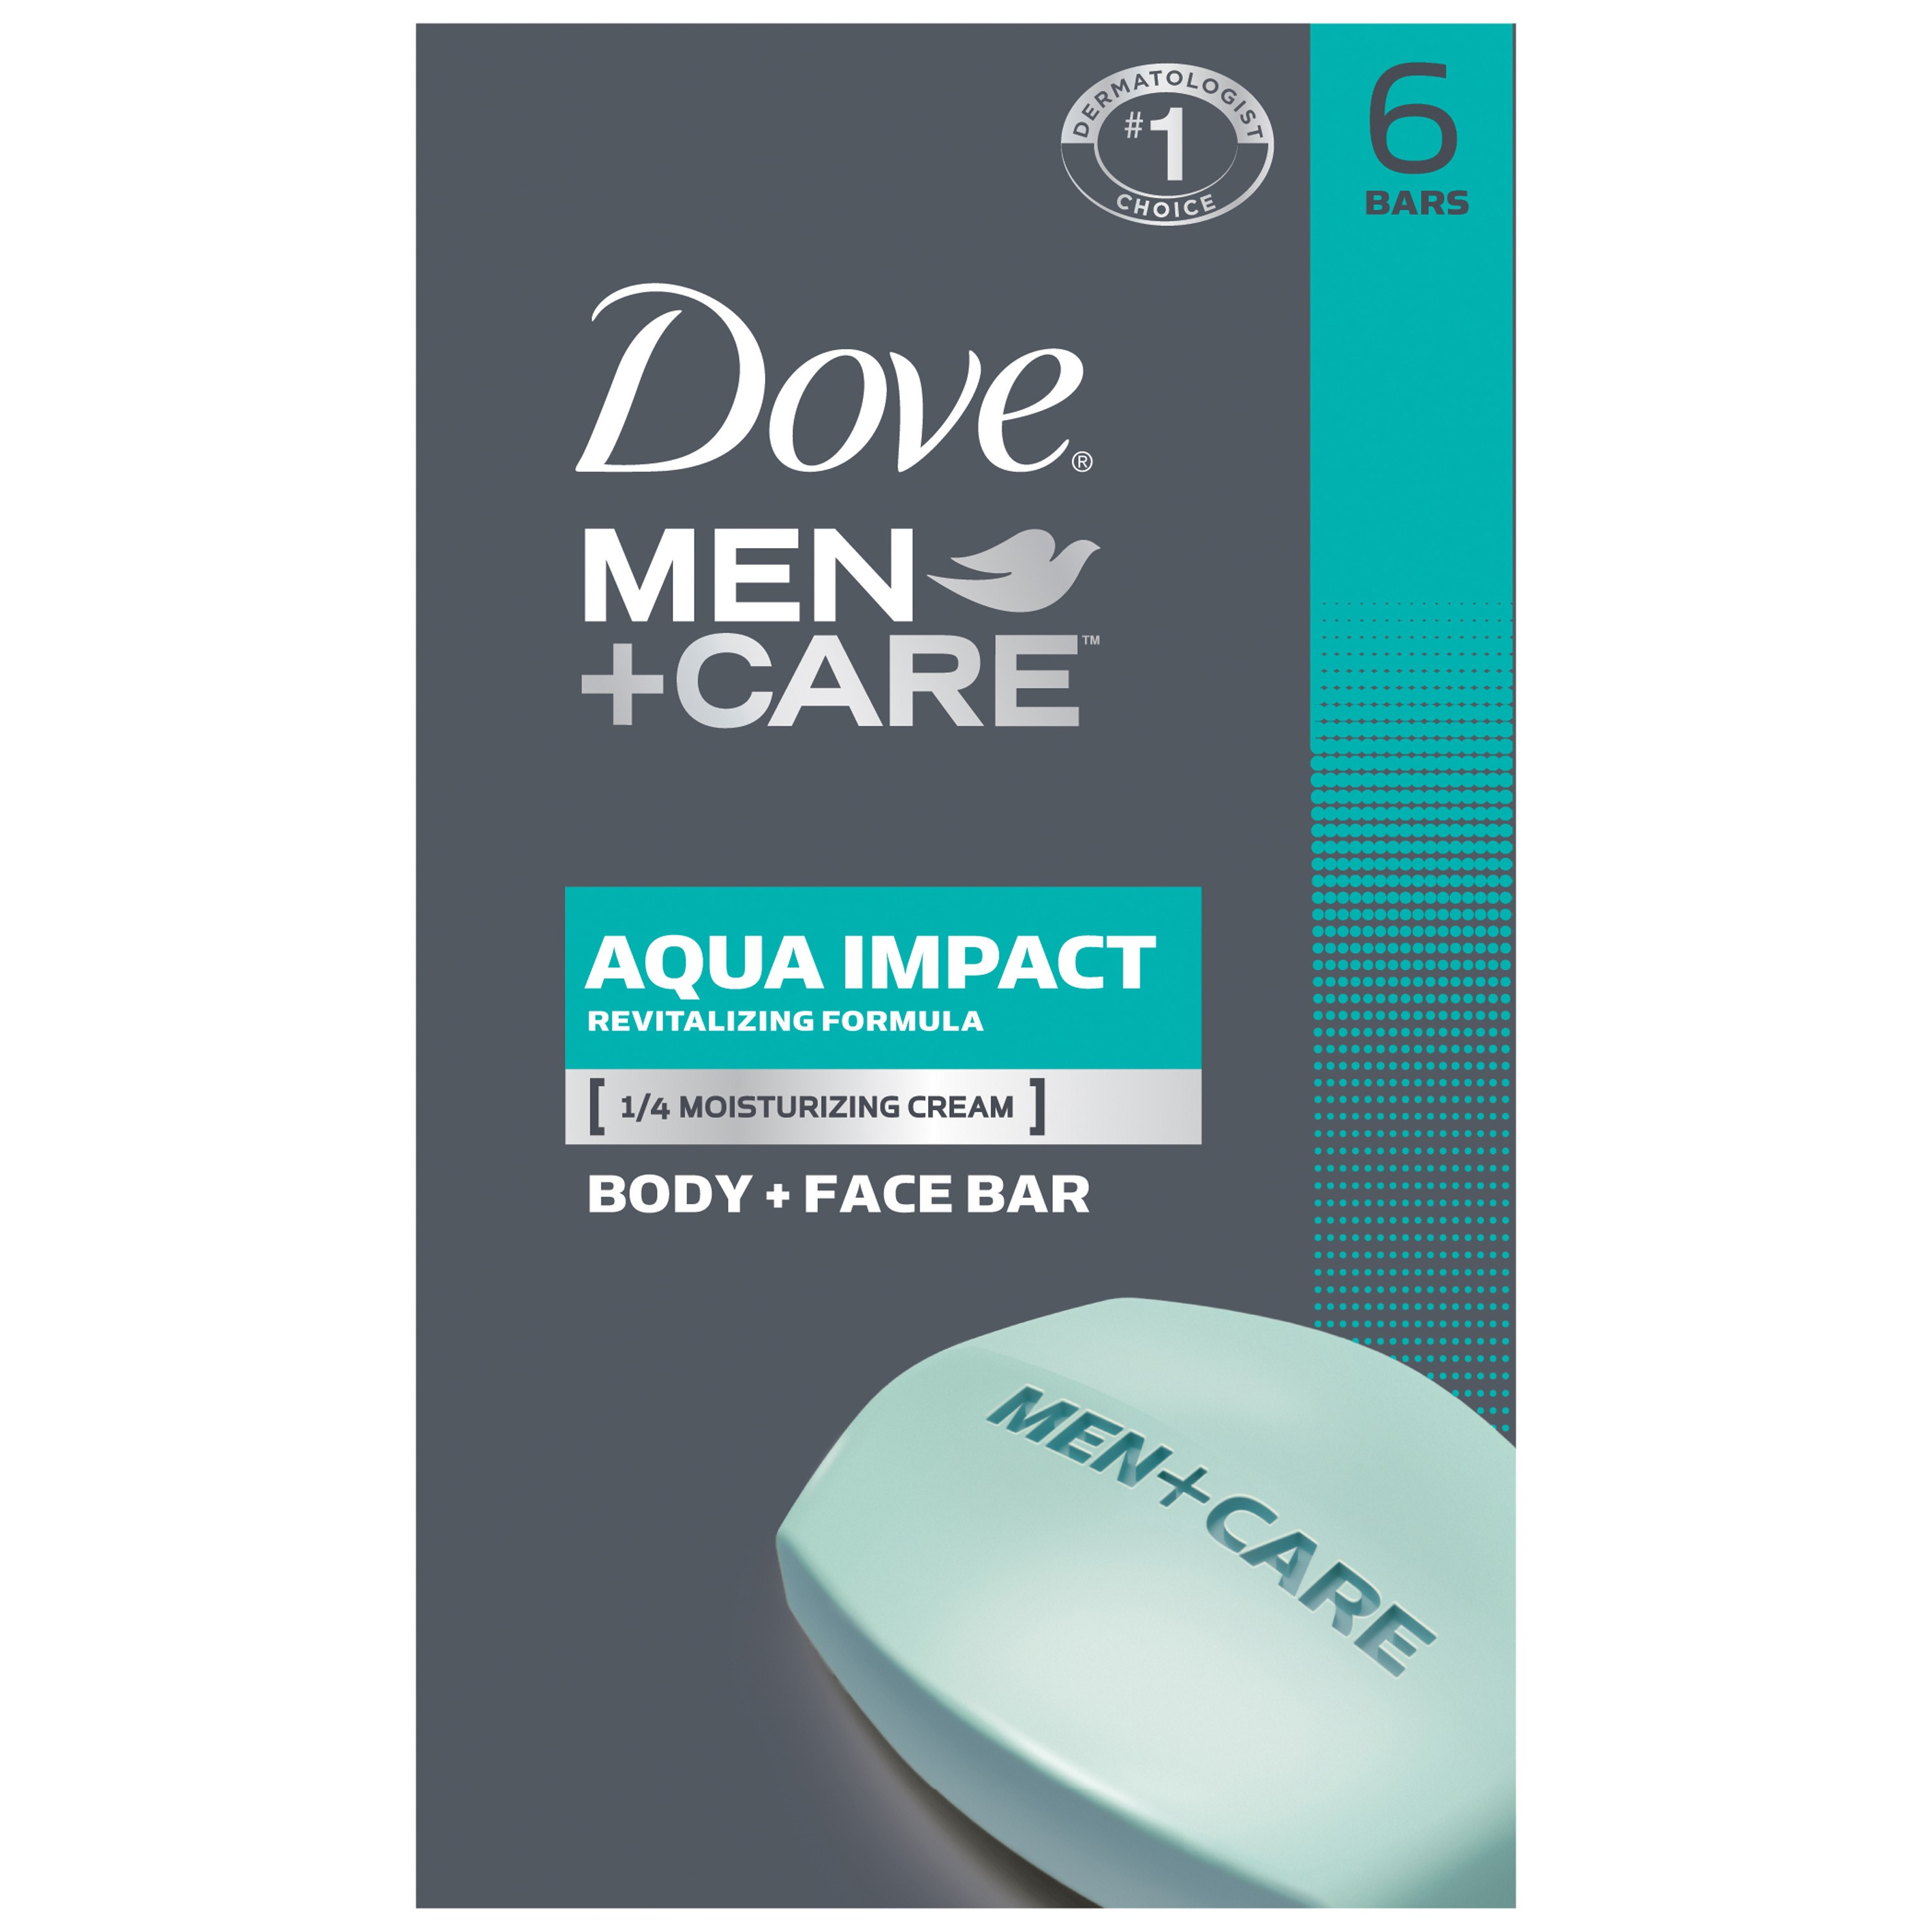 Dove Men+Care Aqua Impact Body and Face Bar 4 oz, 6 Bar